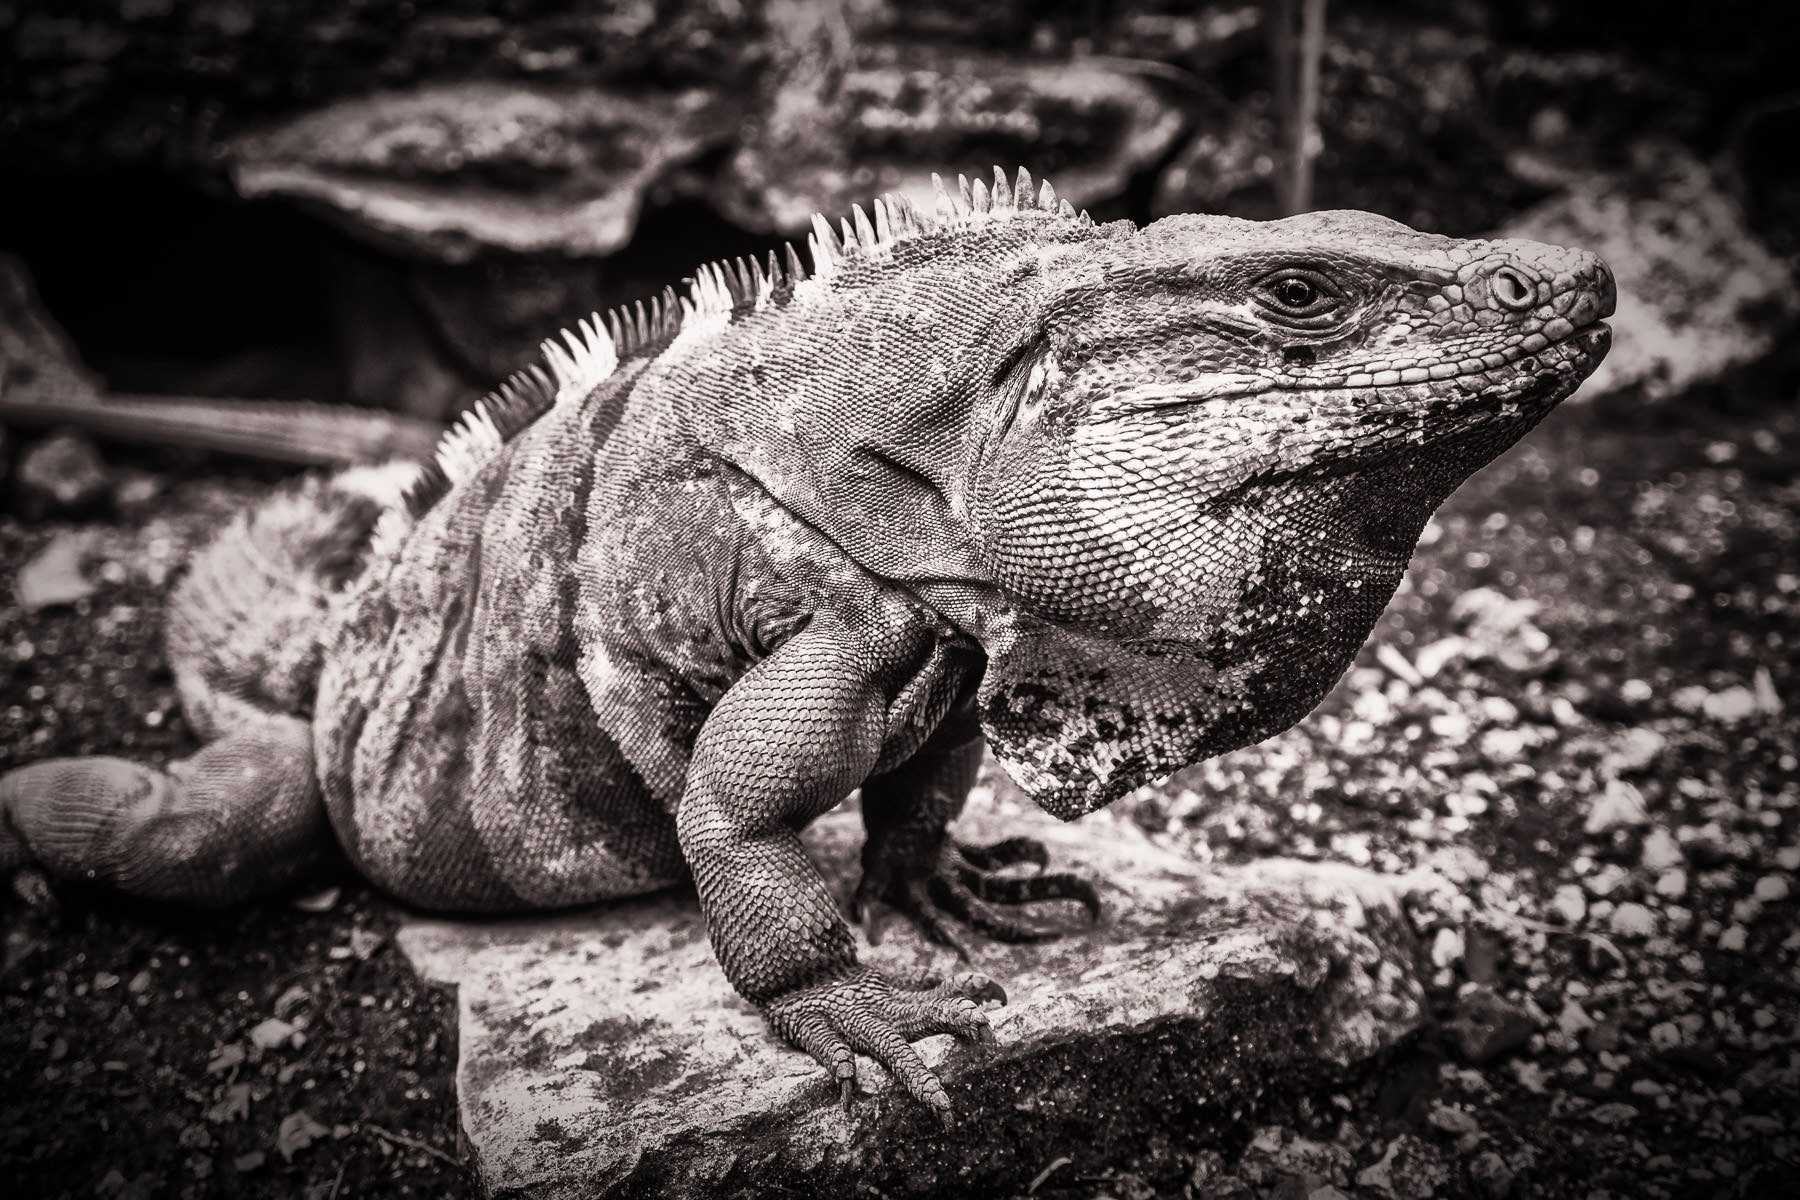 An iguana basks in the sun at the Mayan ruins at San Gervasio, Cozumel, Mexico.